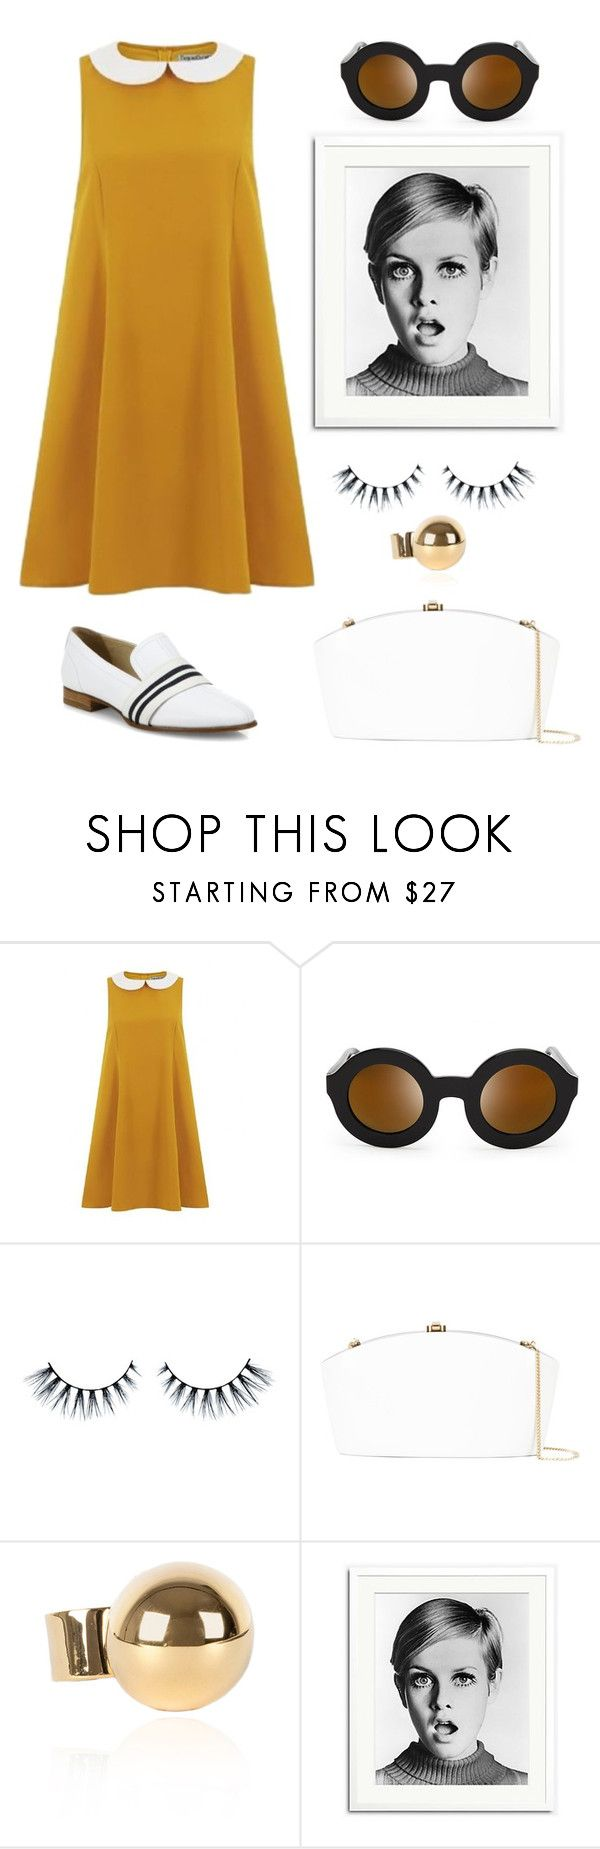 """""""Twiggy Style."""" by schenonek ❤ liked on Polyvore featuring Wildfox, Rocio, Sonic Editions and rag & bone"""